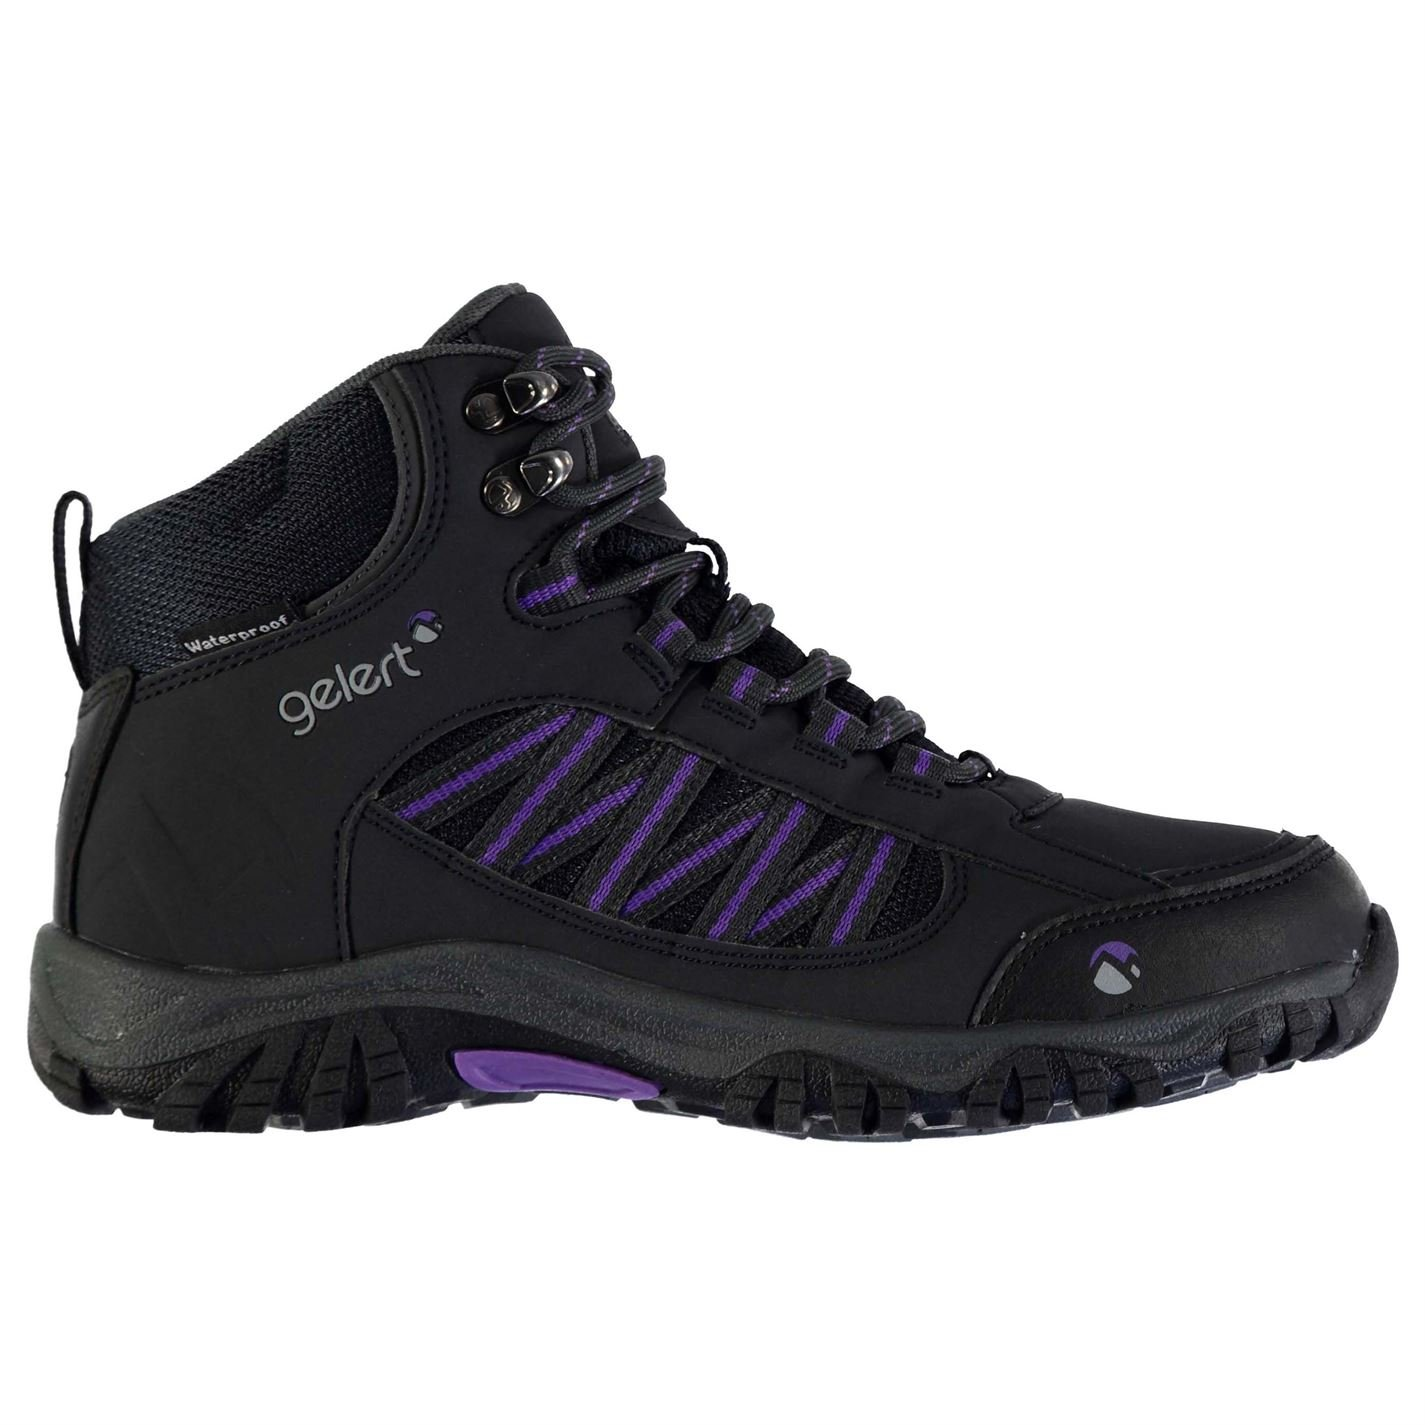 1686a133554 Gelert Womens Horizon Mid Waterproof Walking Boots Breathable Lace Up Shoes